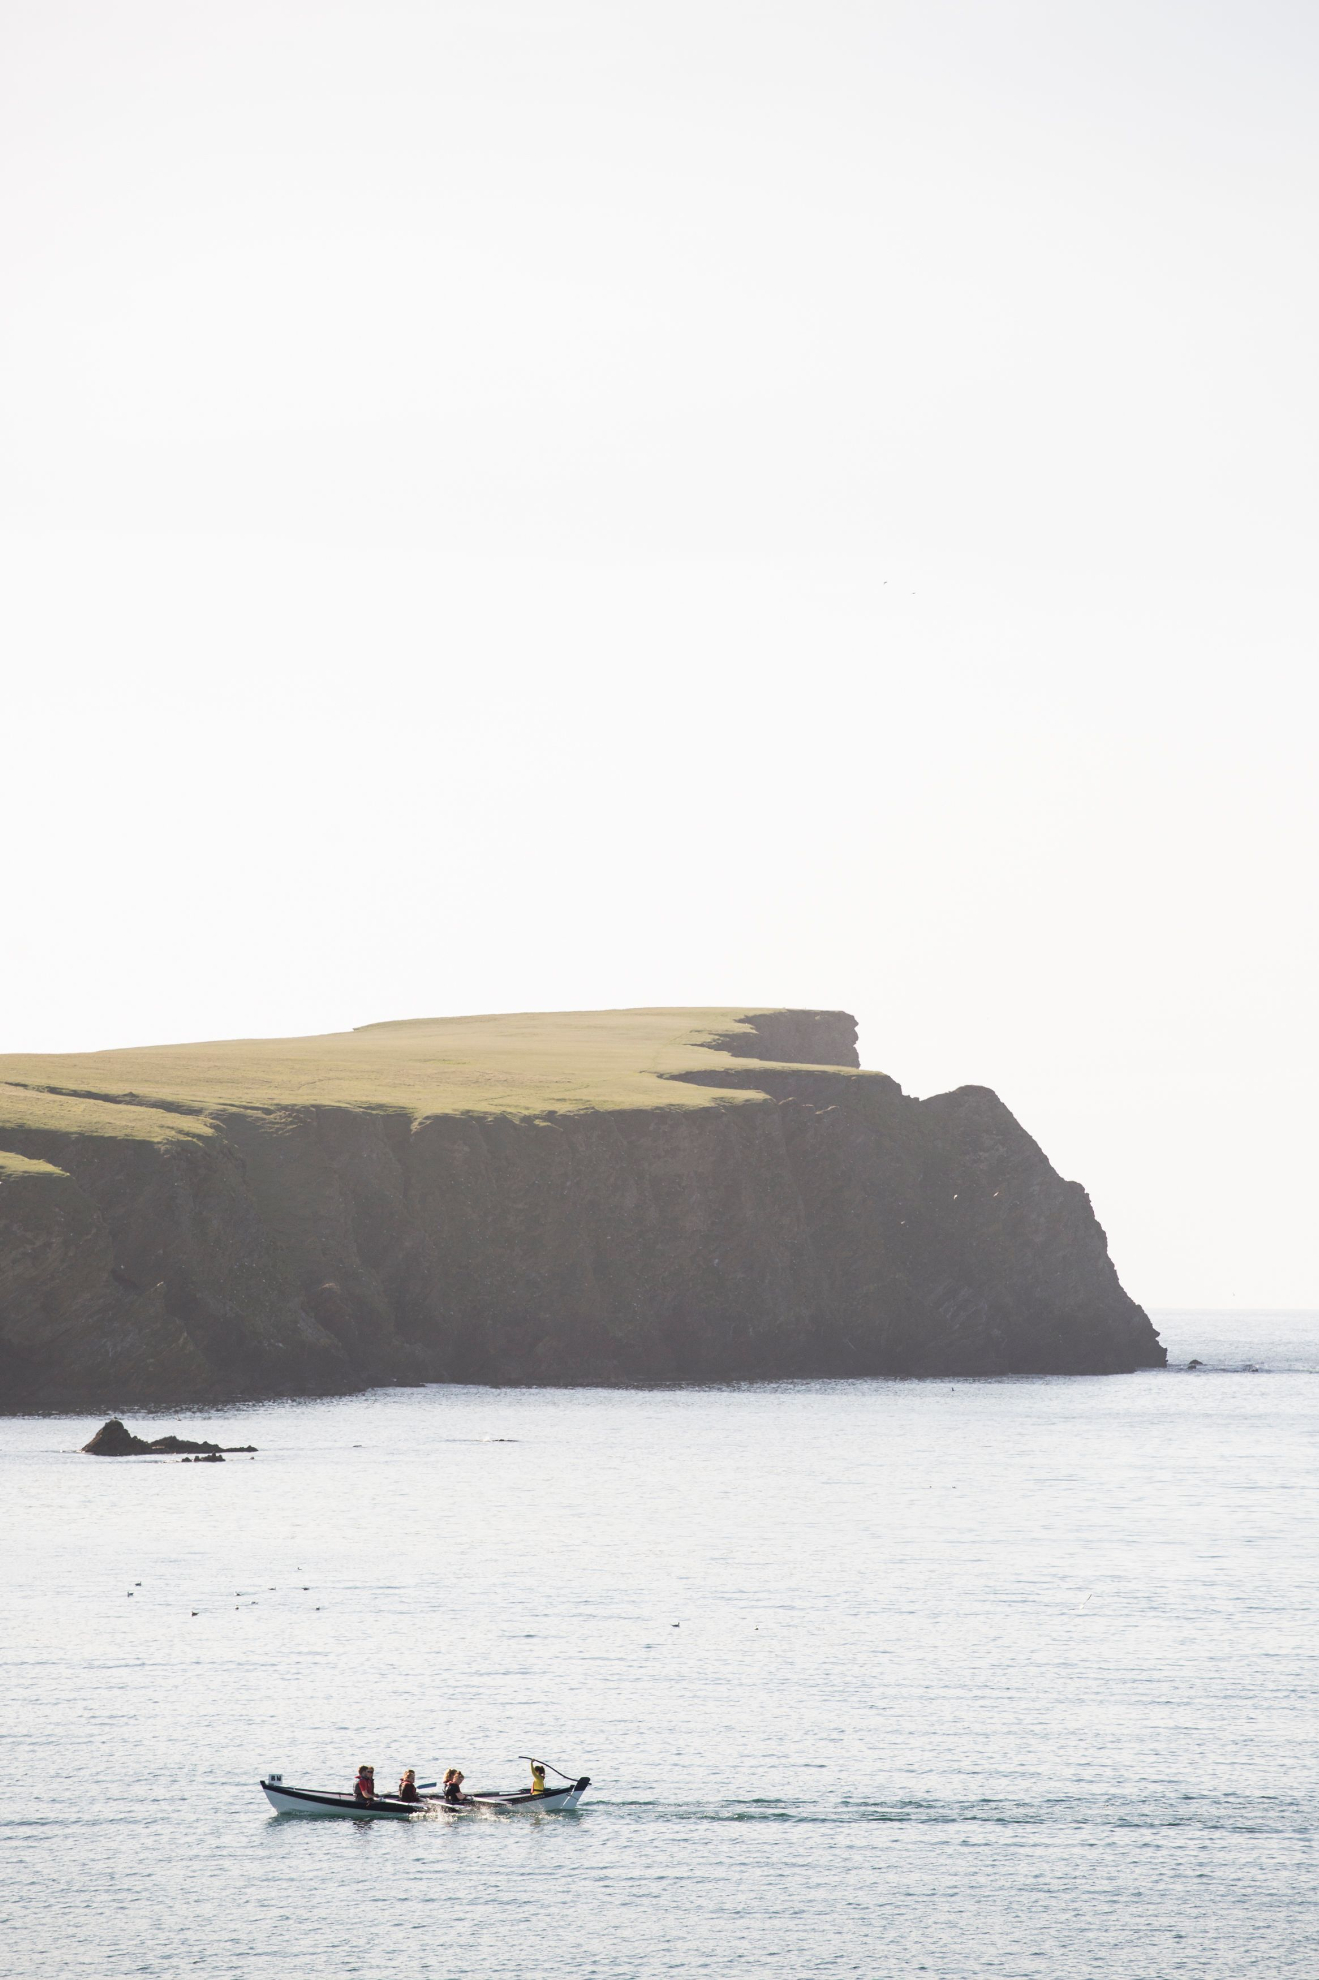 Yoal rowing in front of St Ninian's Isle | River Thompson